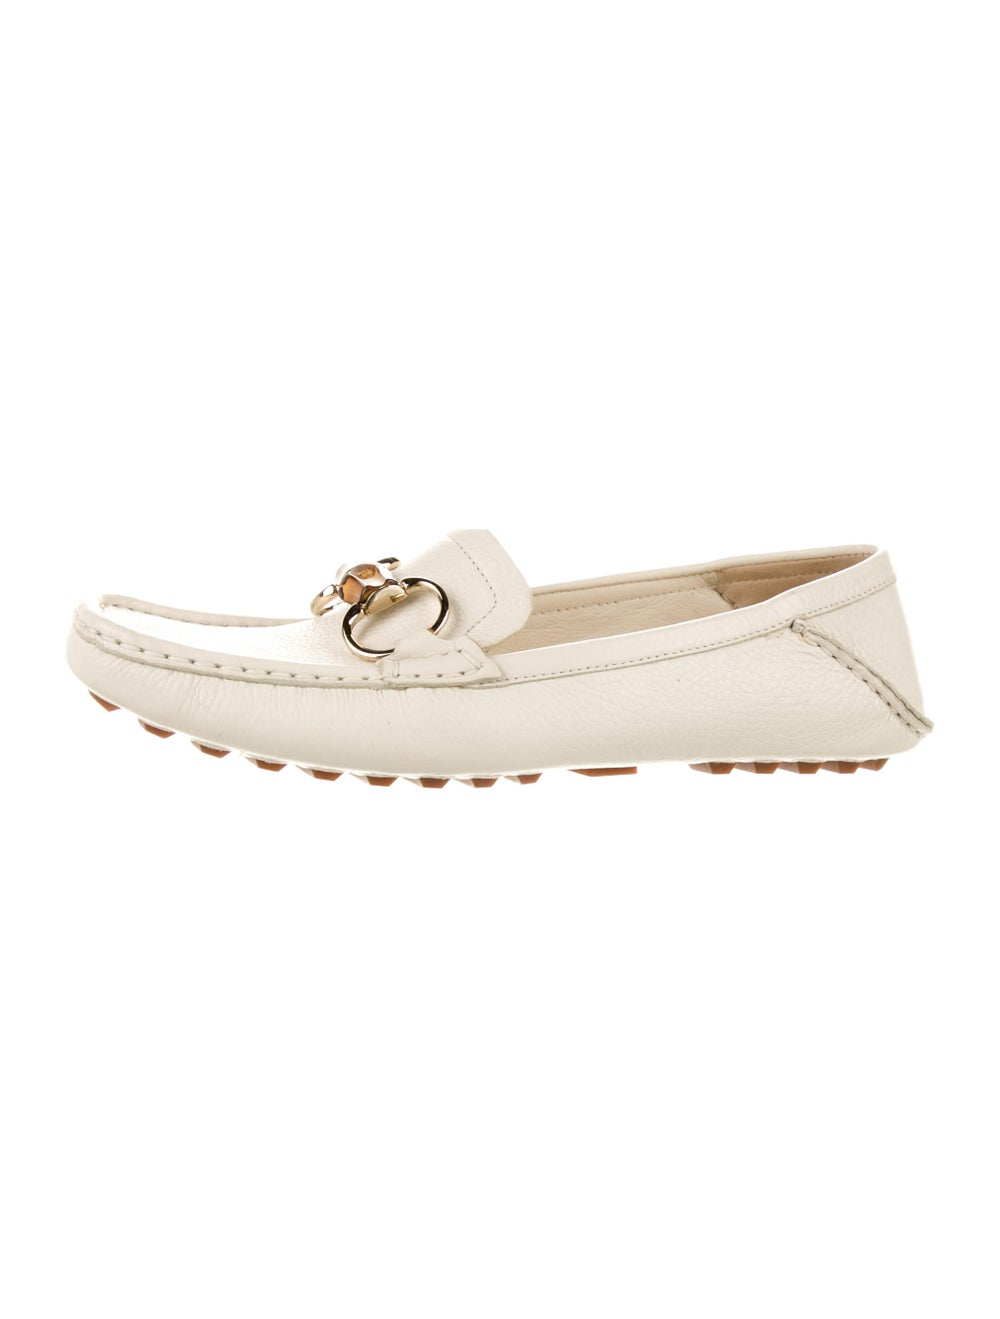 Gucci Horsebit Accent Leather Loafers White - image 2